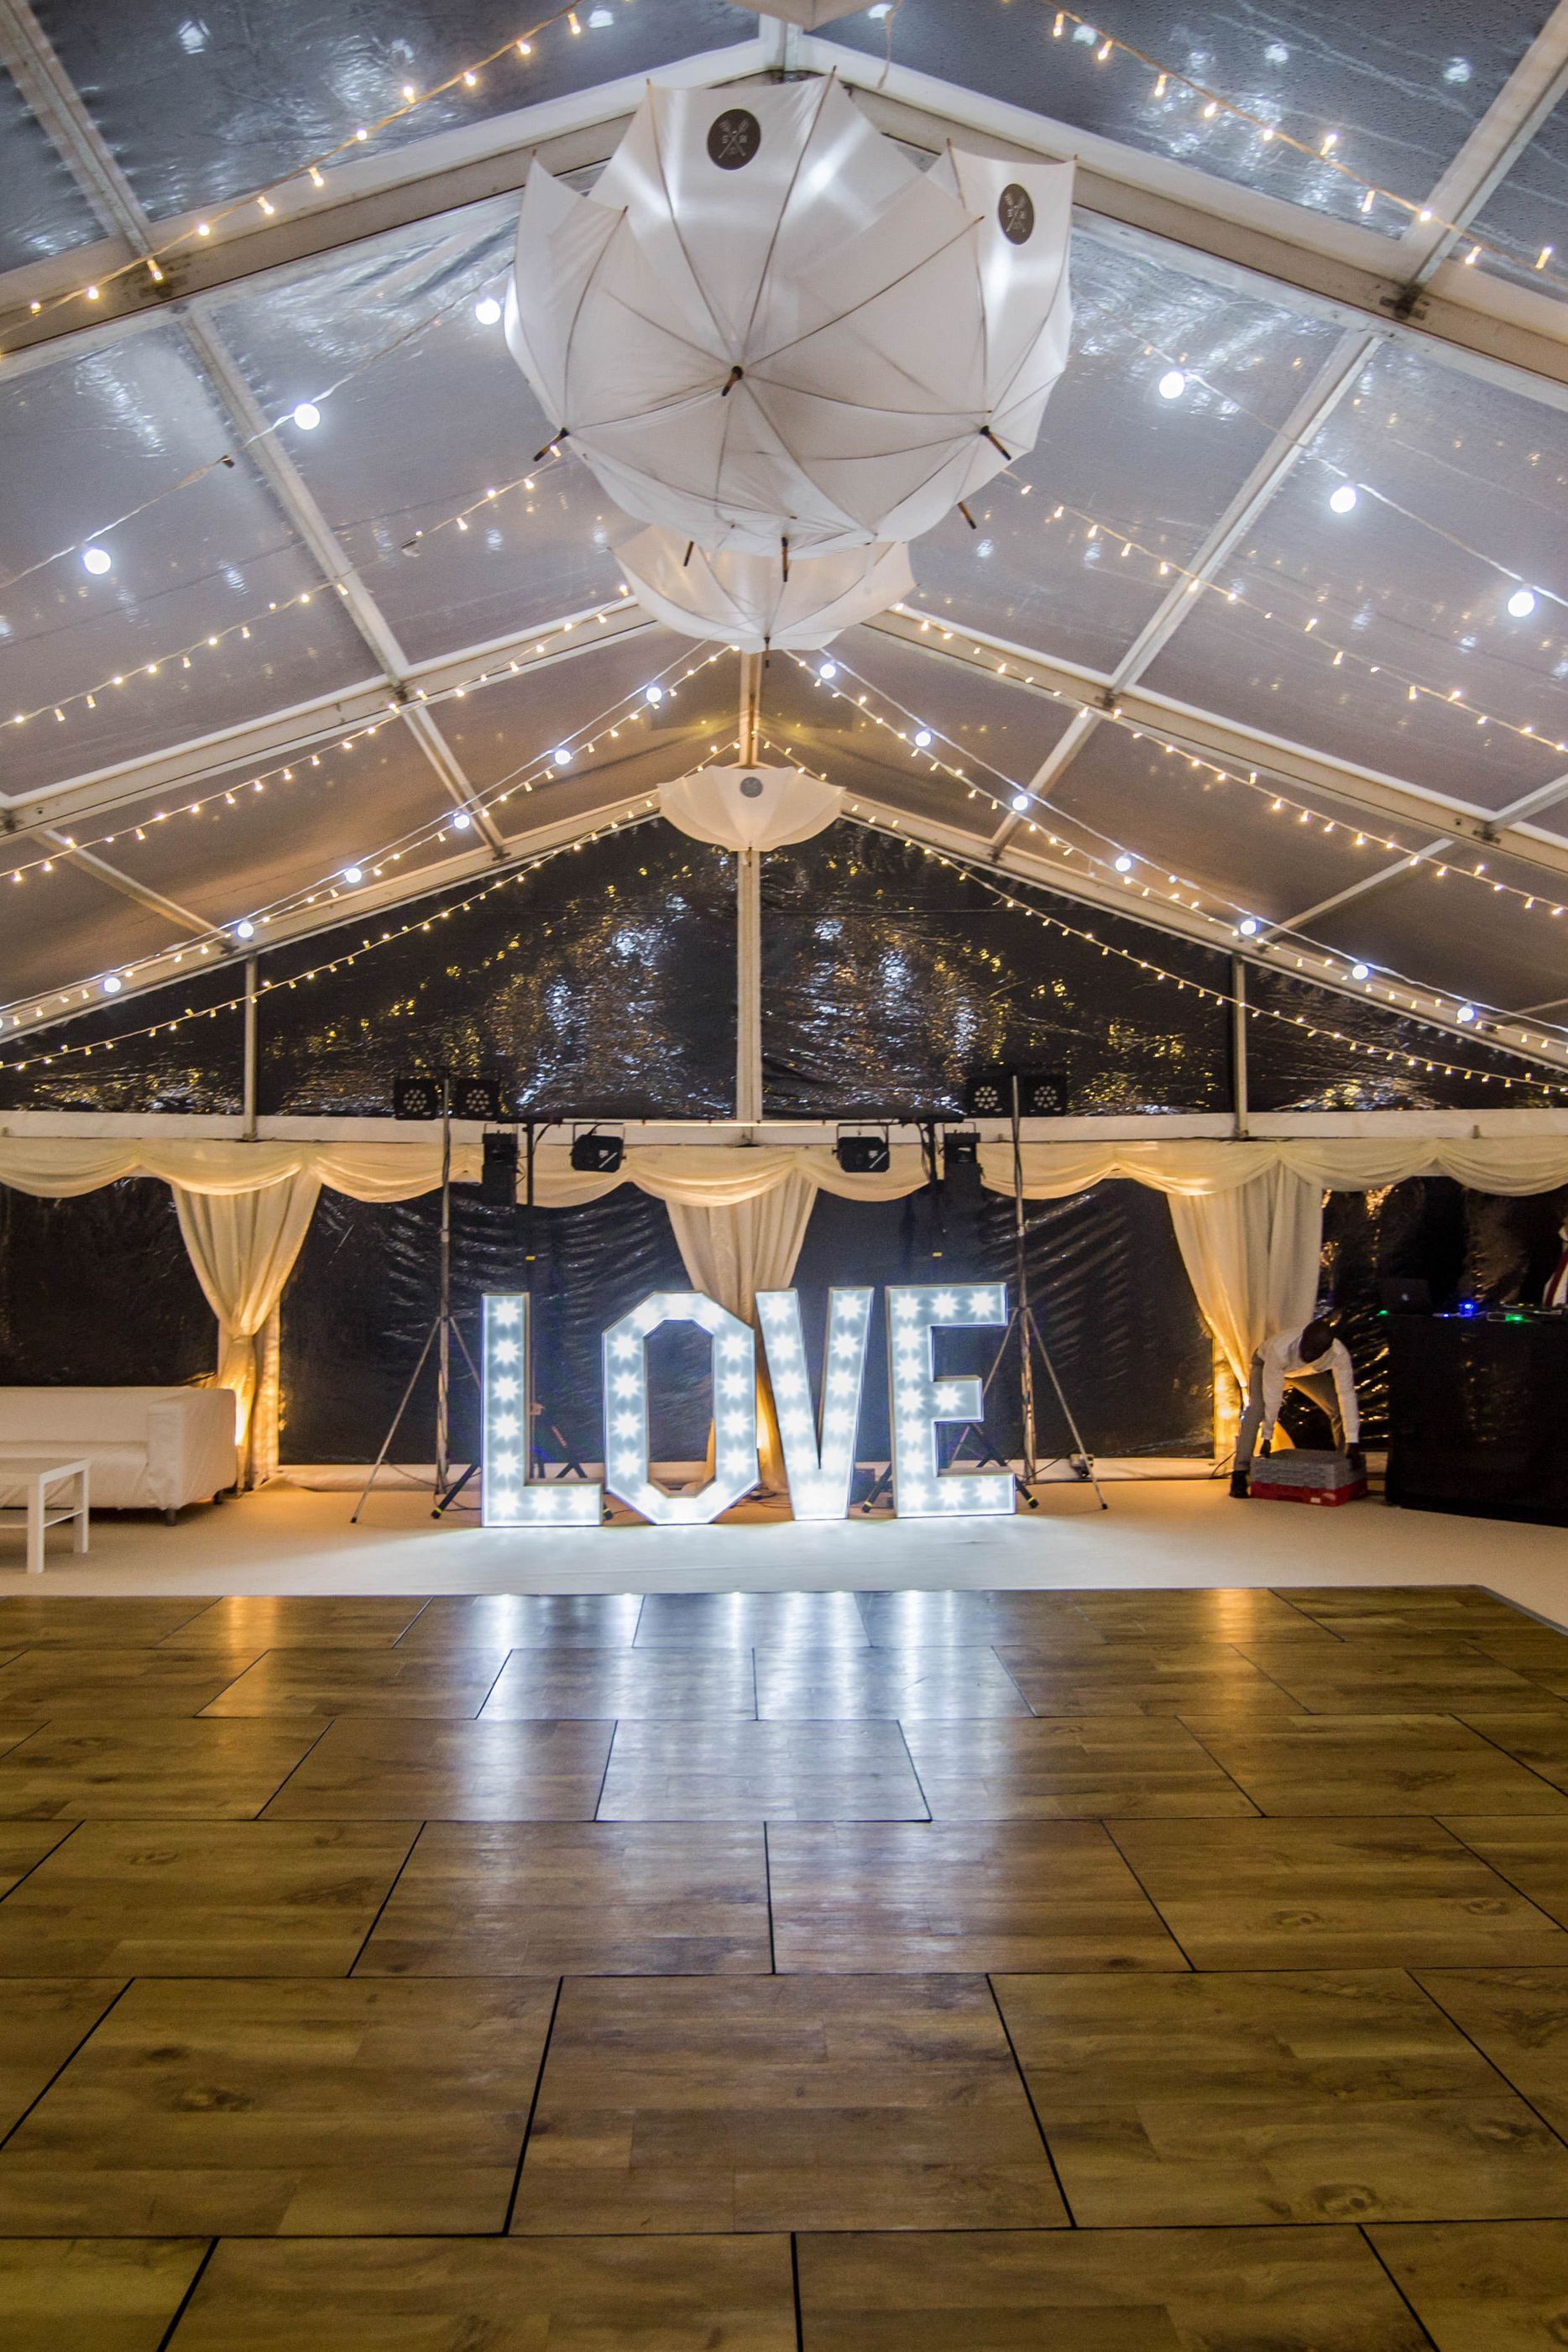 hatch marquee hire hatch marquees. maxwell and scarlett 18.07.15. bolt head nr salcombe 30